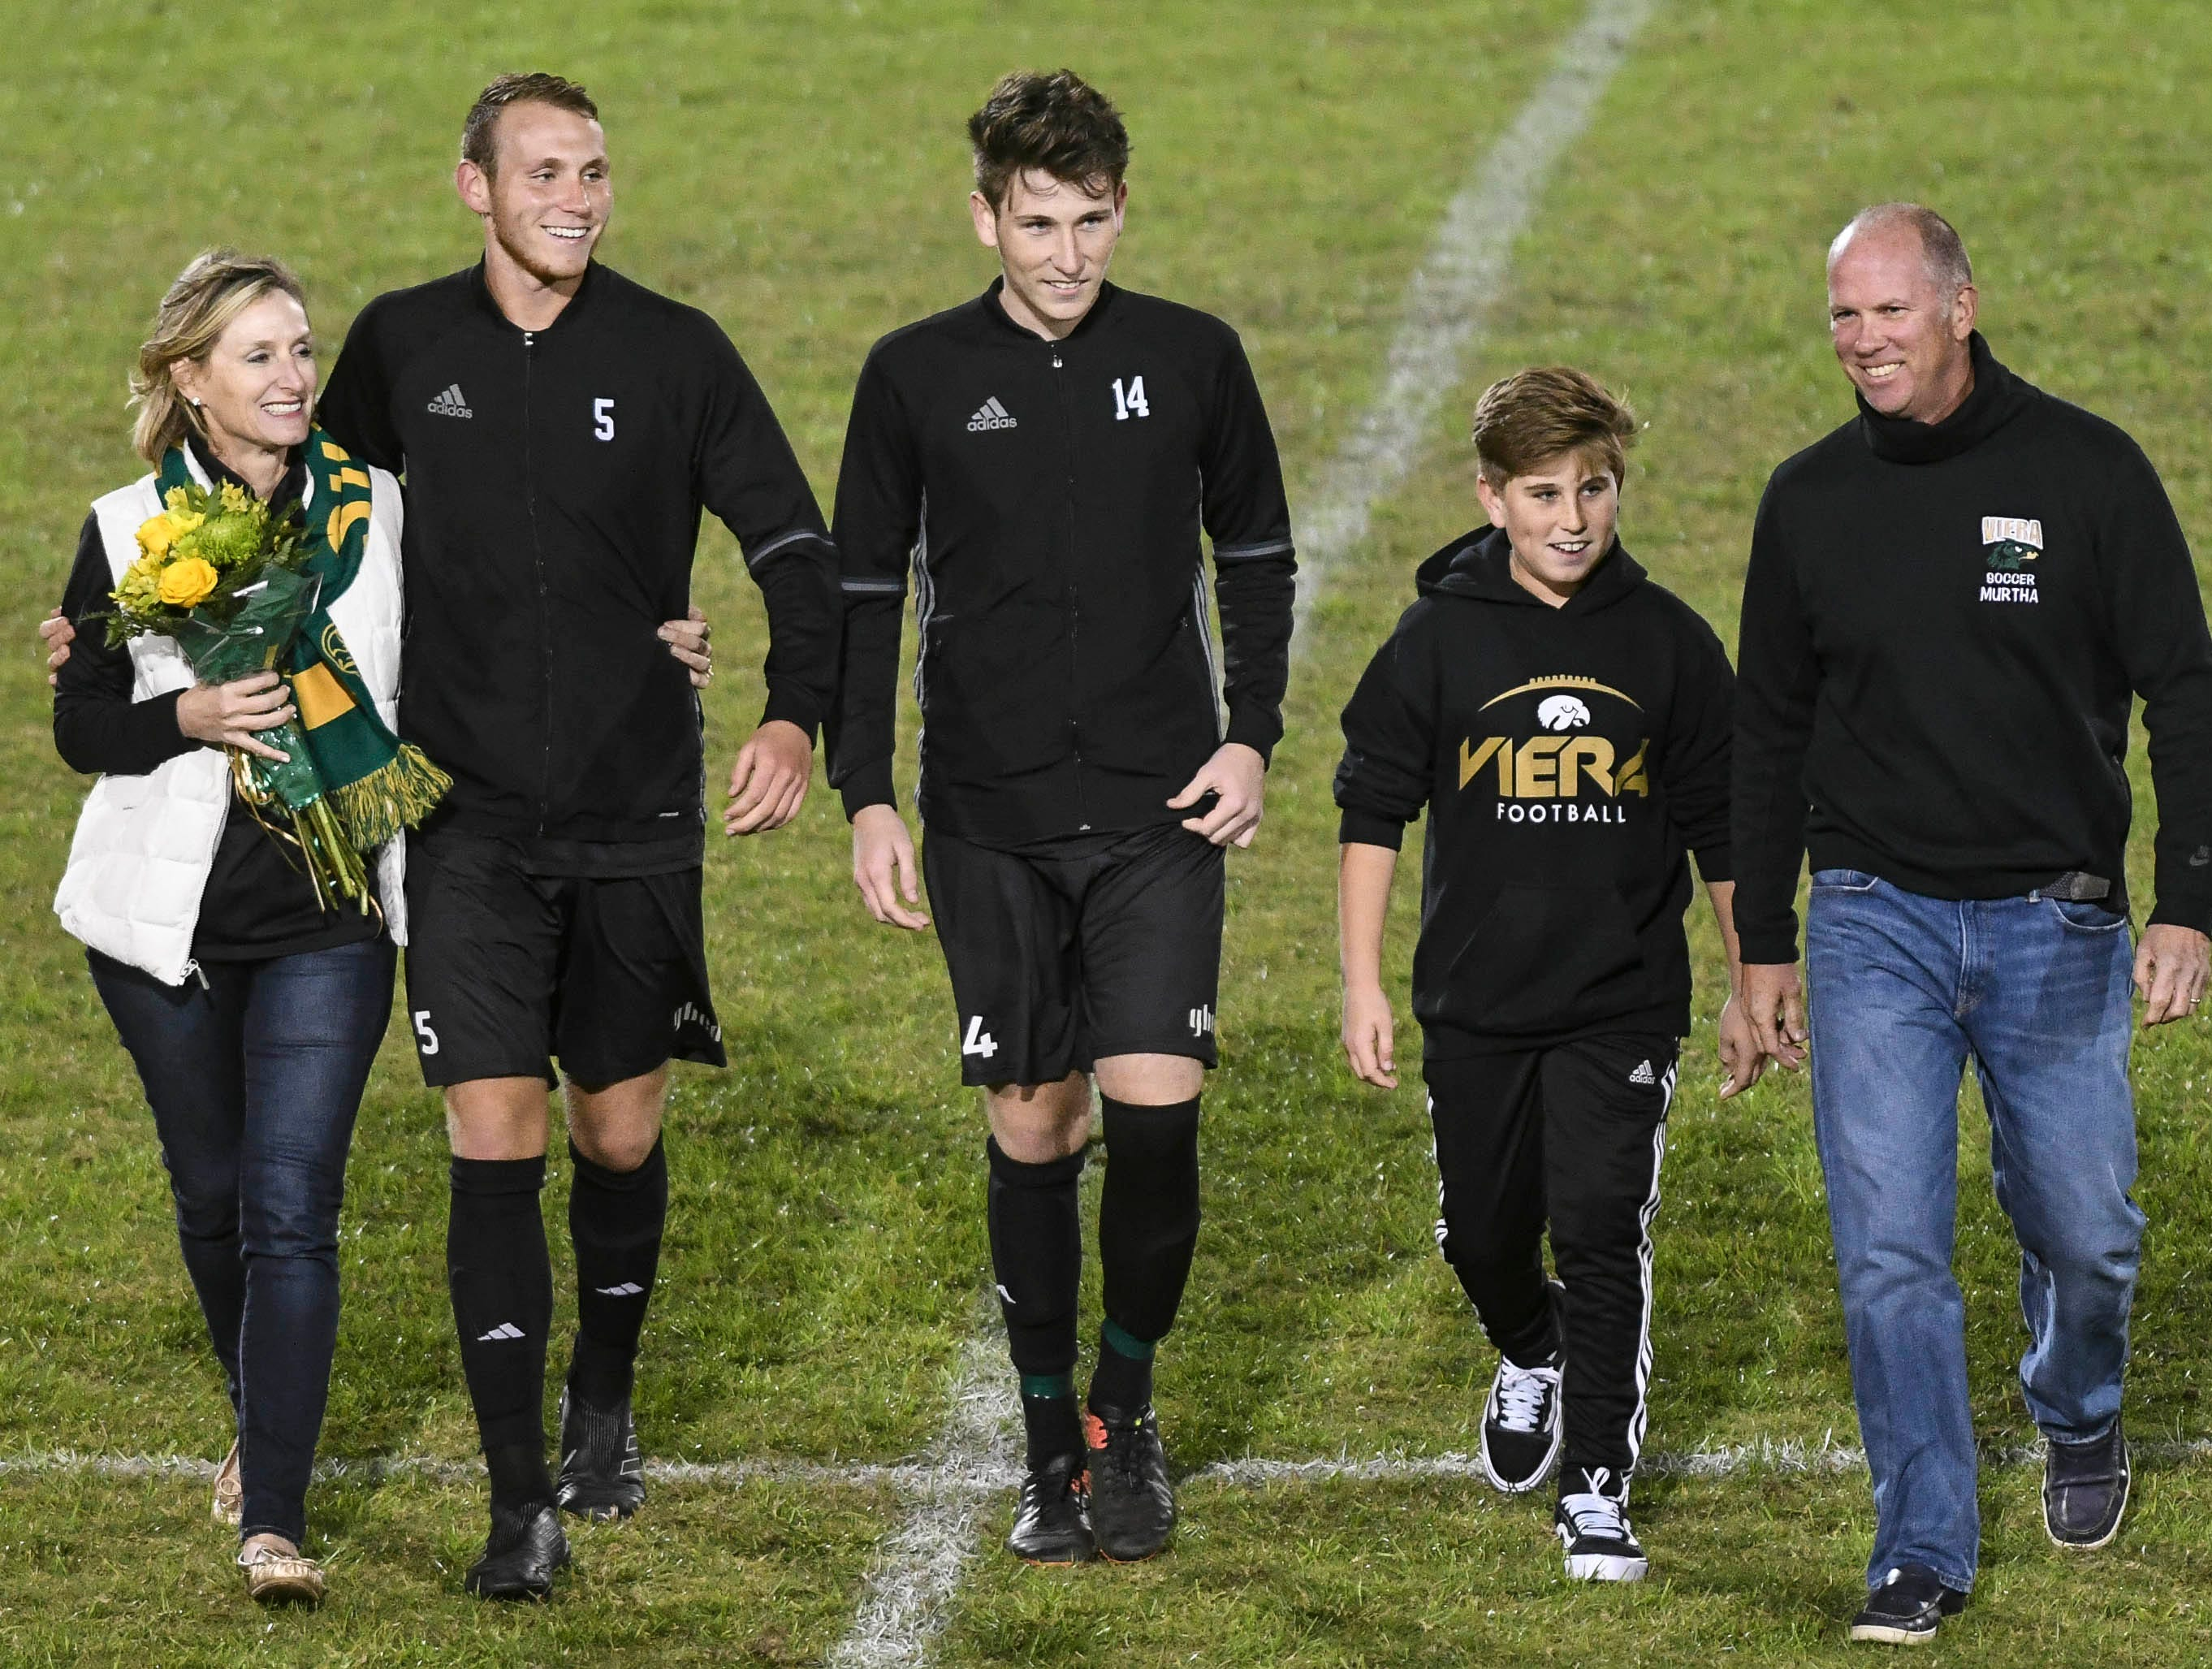 Robbie Murtha (5) of Viera was one of six seniors honored during Friday's game against MCC.